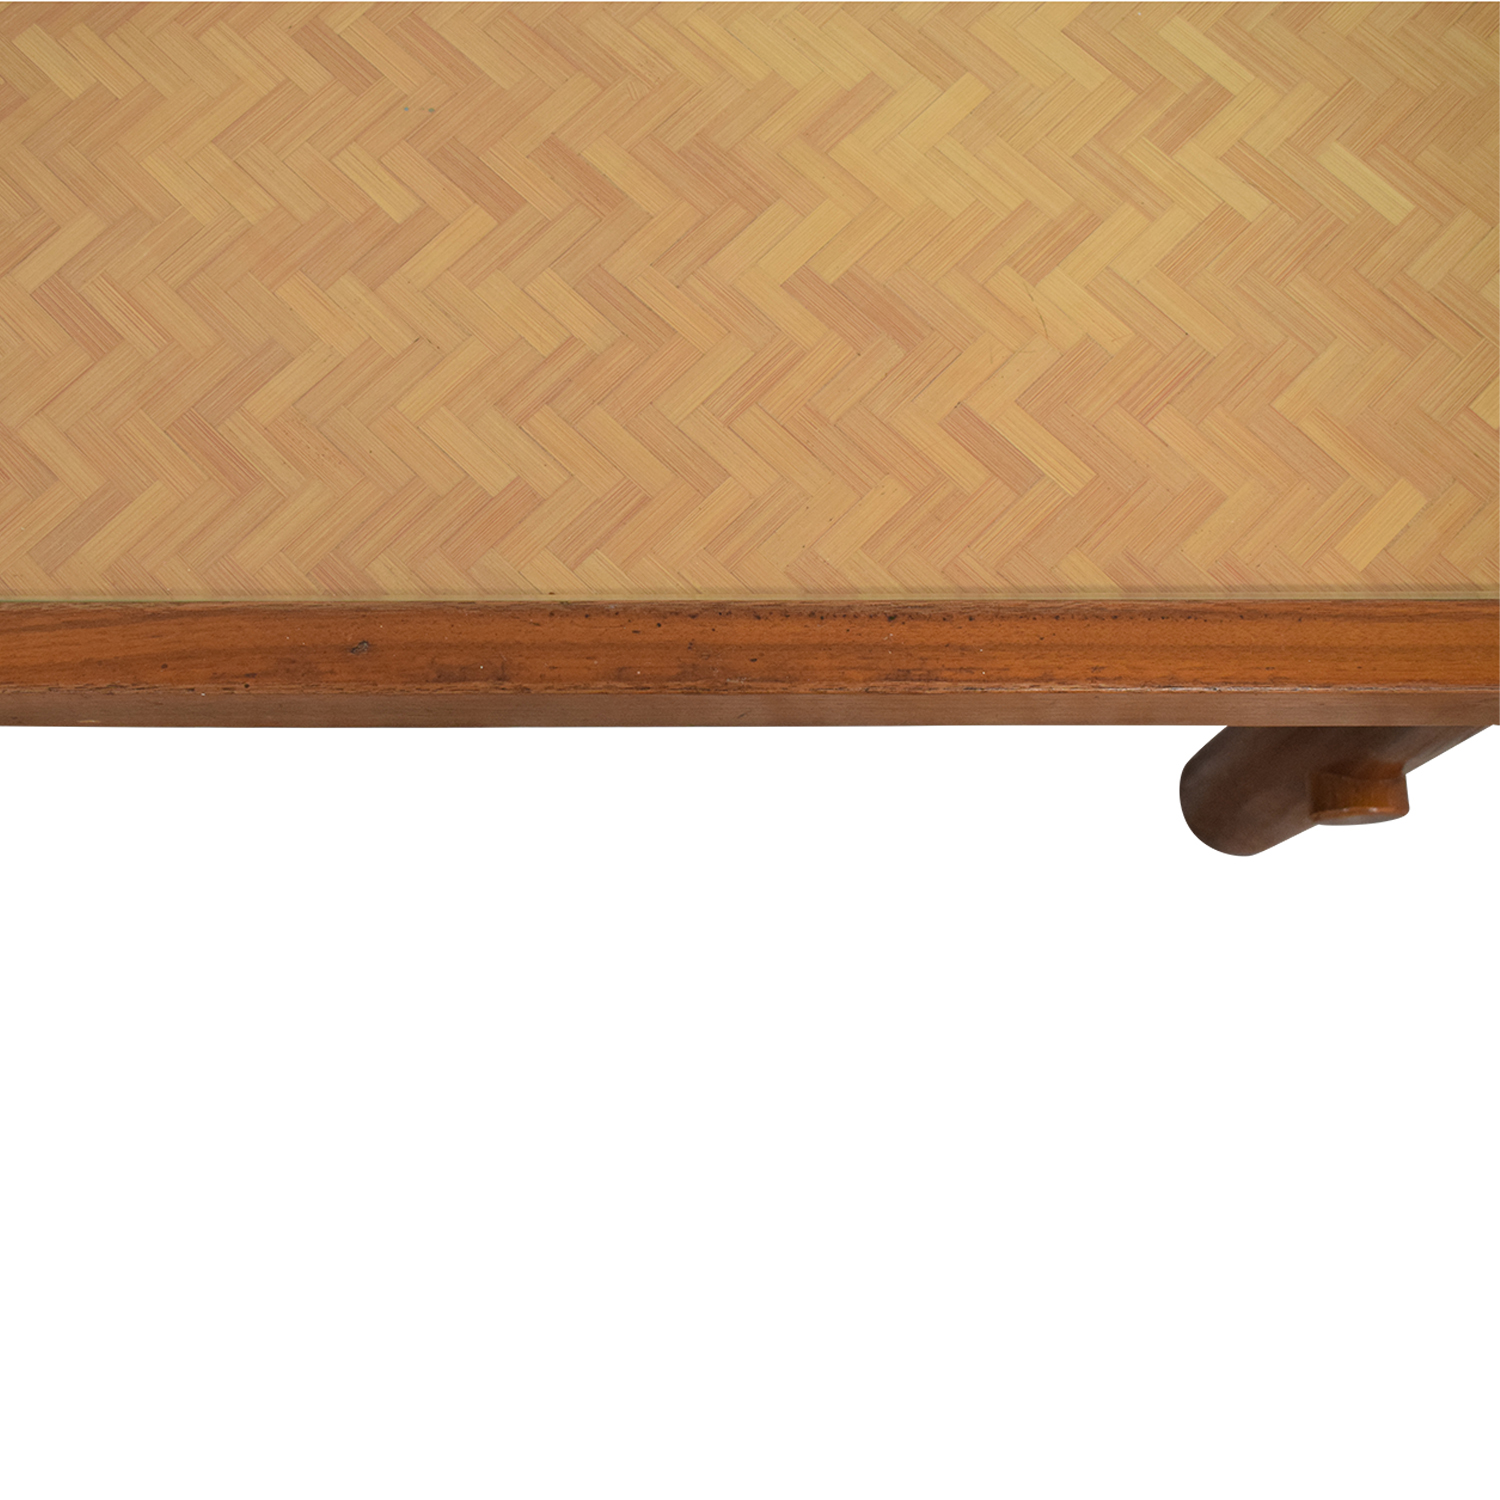 Mid Century Modern Coffee Table dimensions